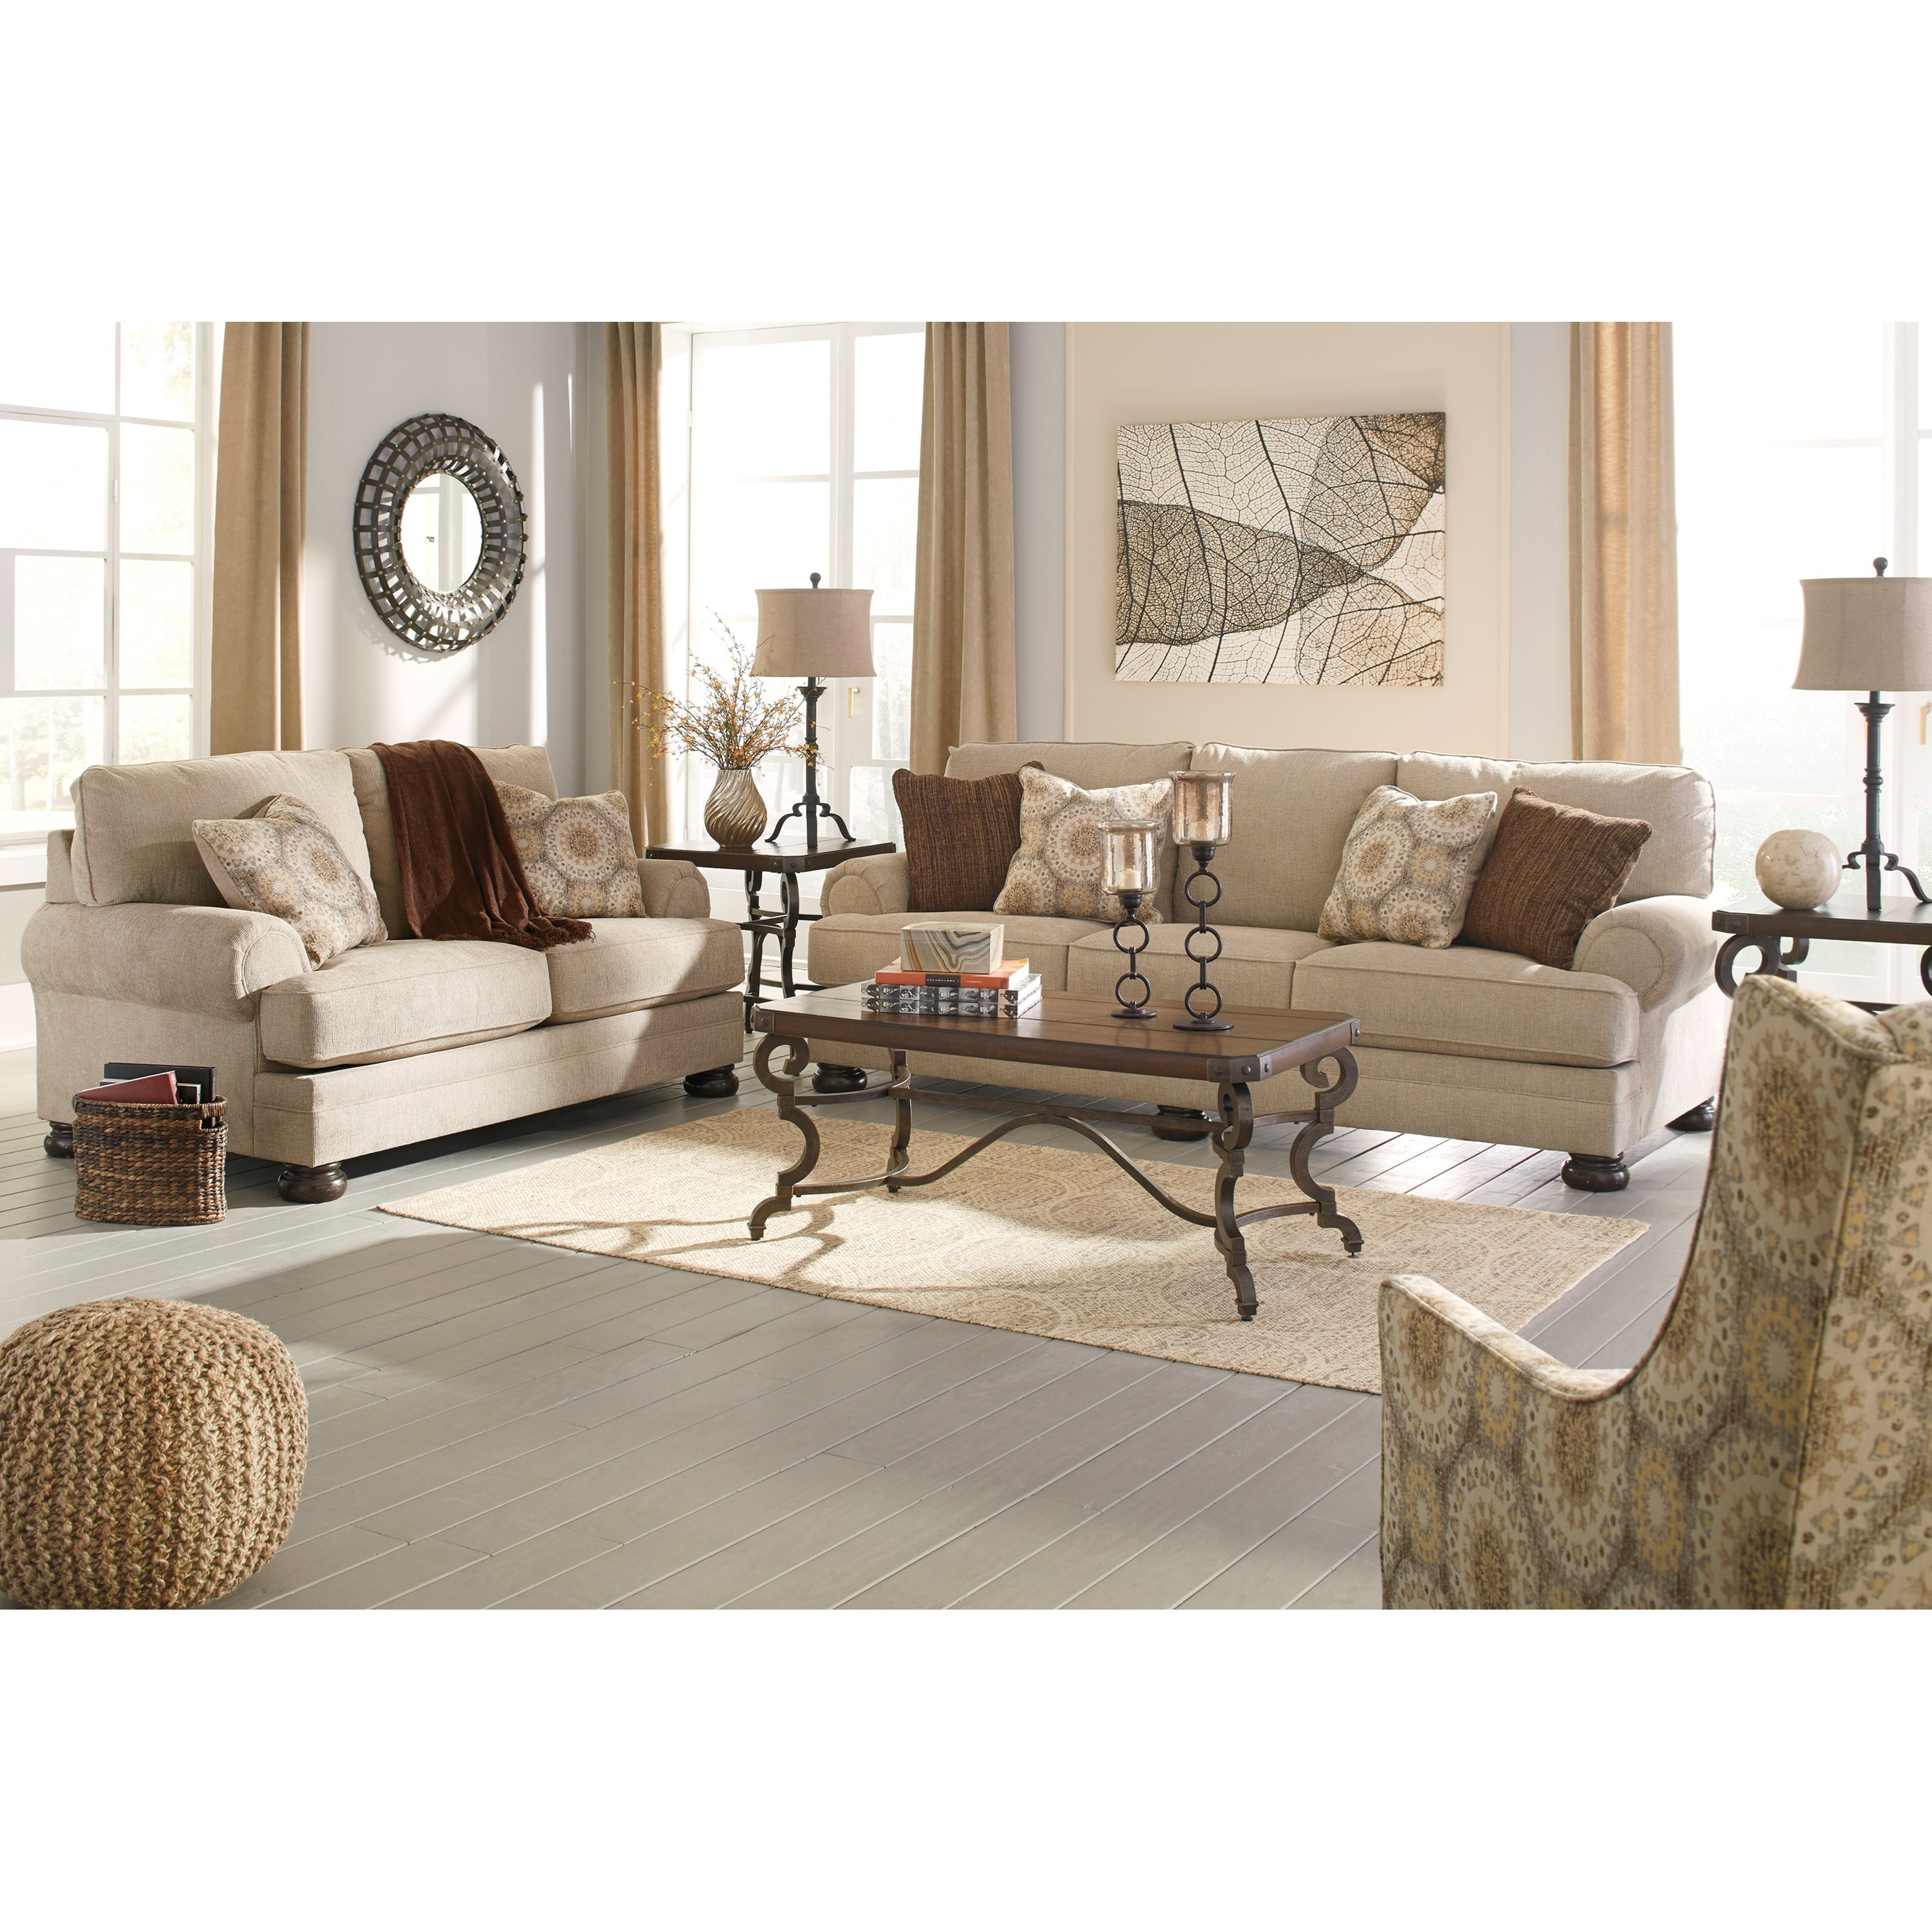 Benchcraft Quarry Hill Stationary Living Room Group - Item Number: 38701 Living Room Group 3